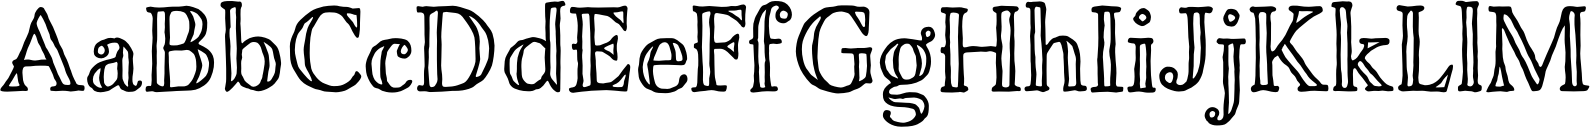 Charcuterie Engraved Font